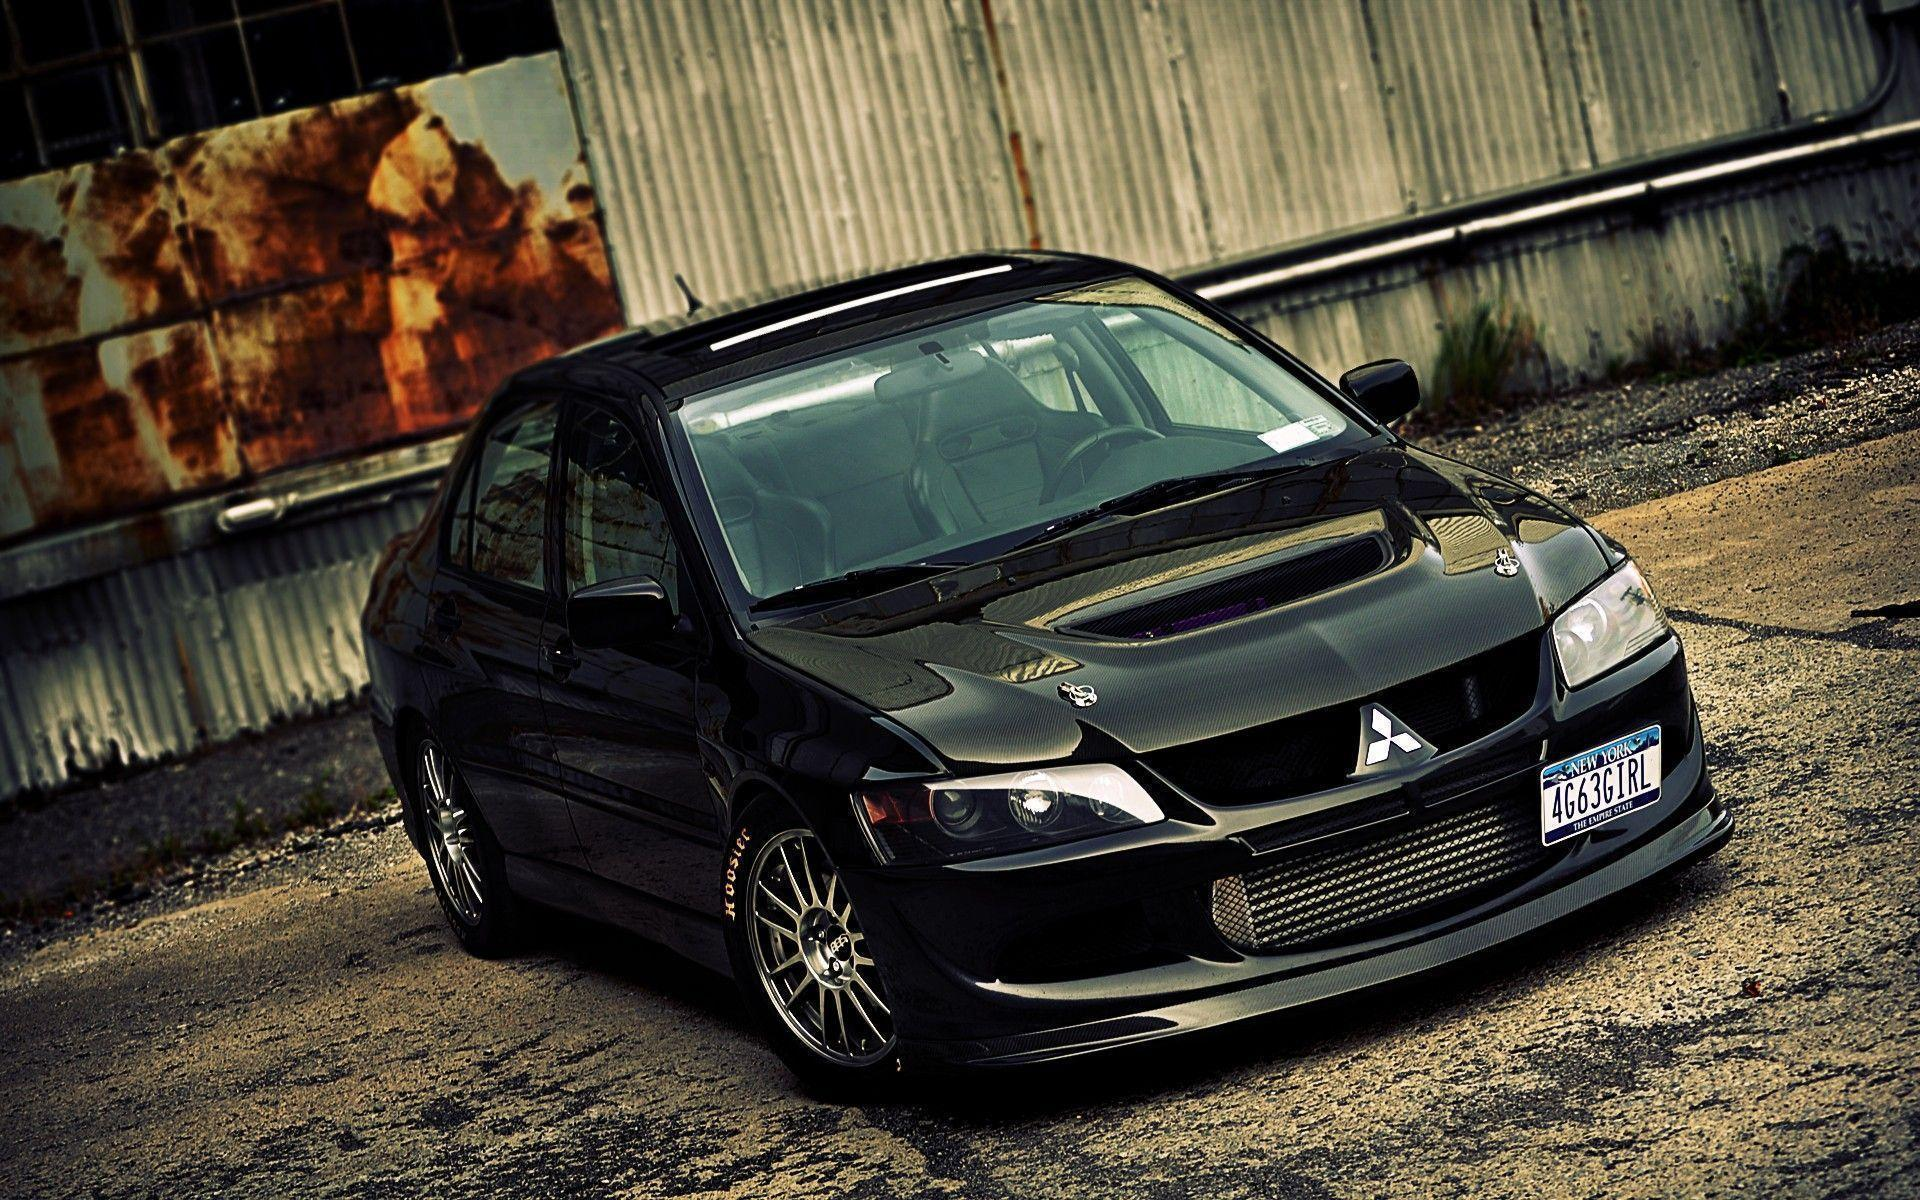 Free Mitsubishi Lancer Evolution VIII desktop wallpaper 19201200